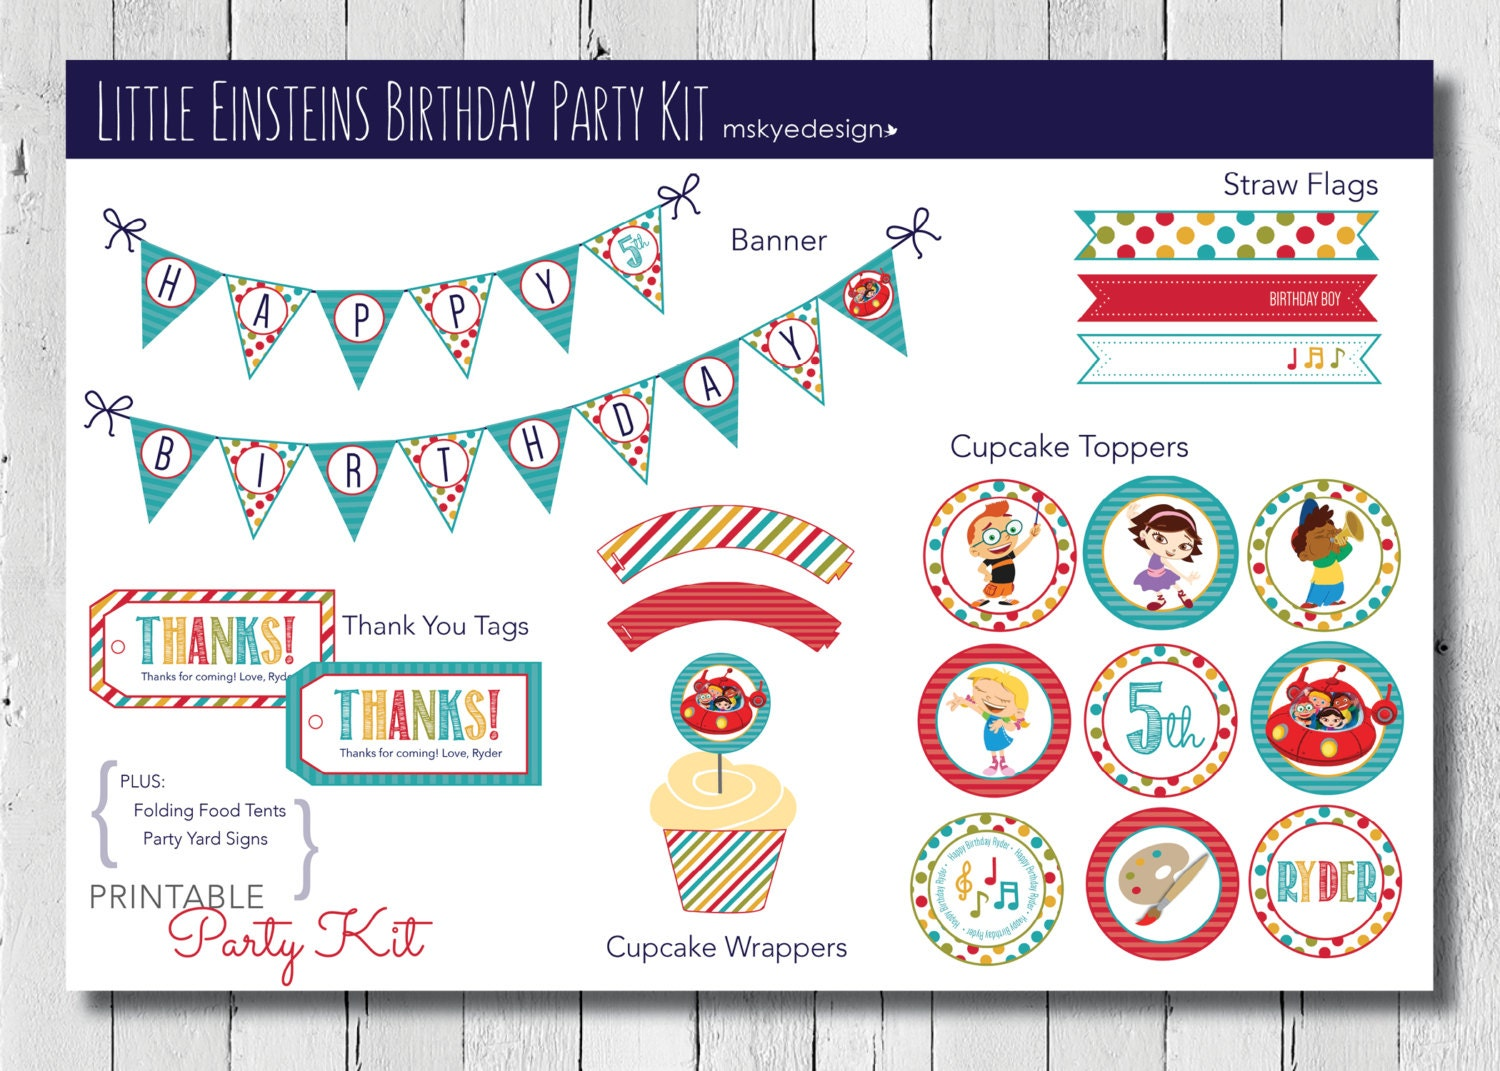 Little Einsteins Birthday Party Kit Printable | Etsy